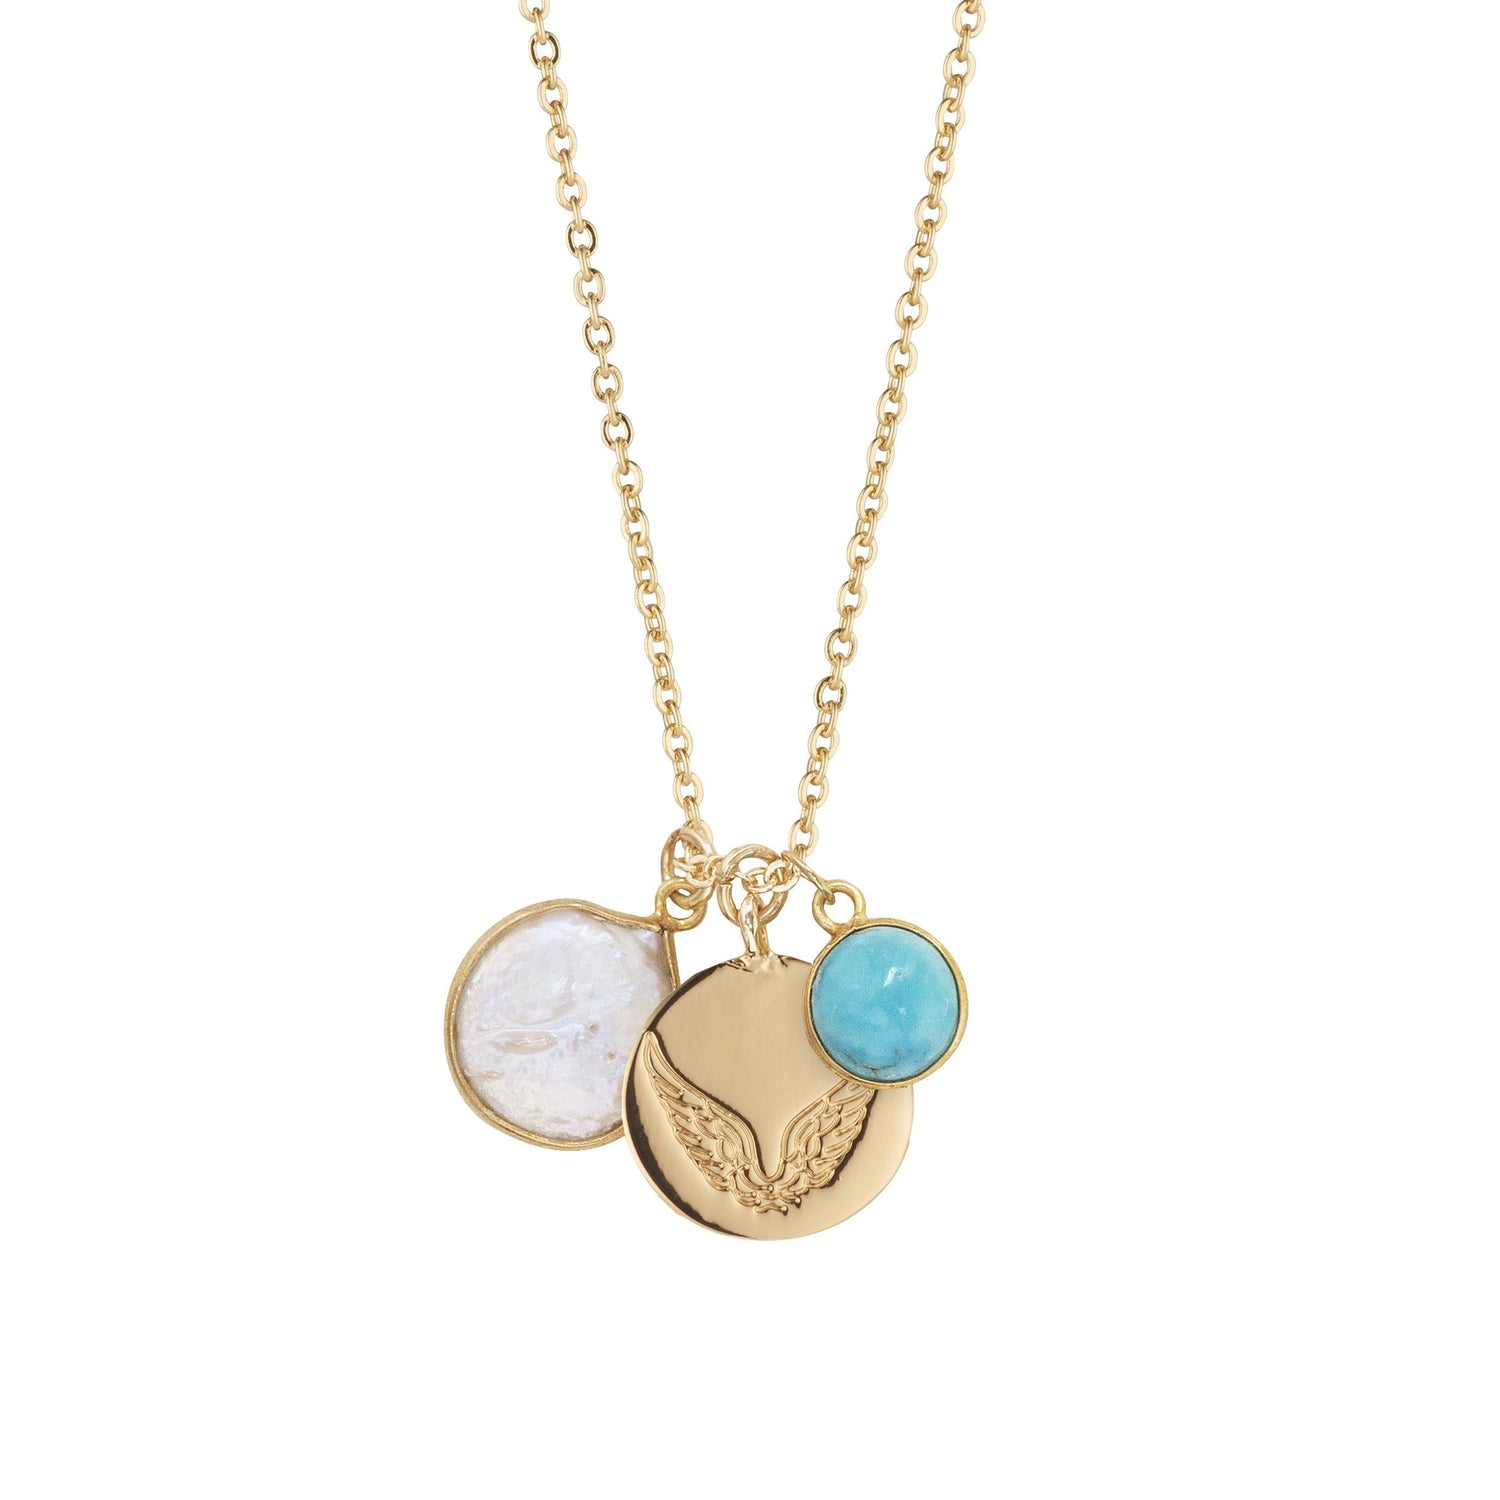 Pearl & Turquoise Necklace With Disc Charm for Peacefulness